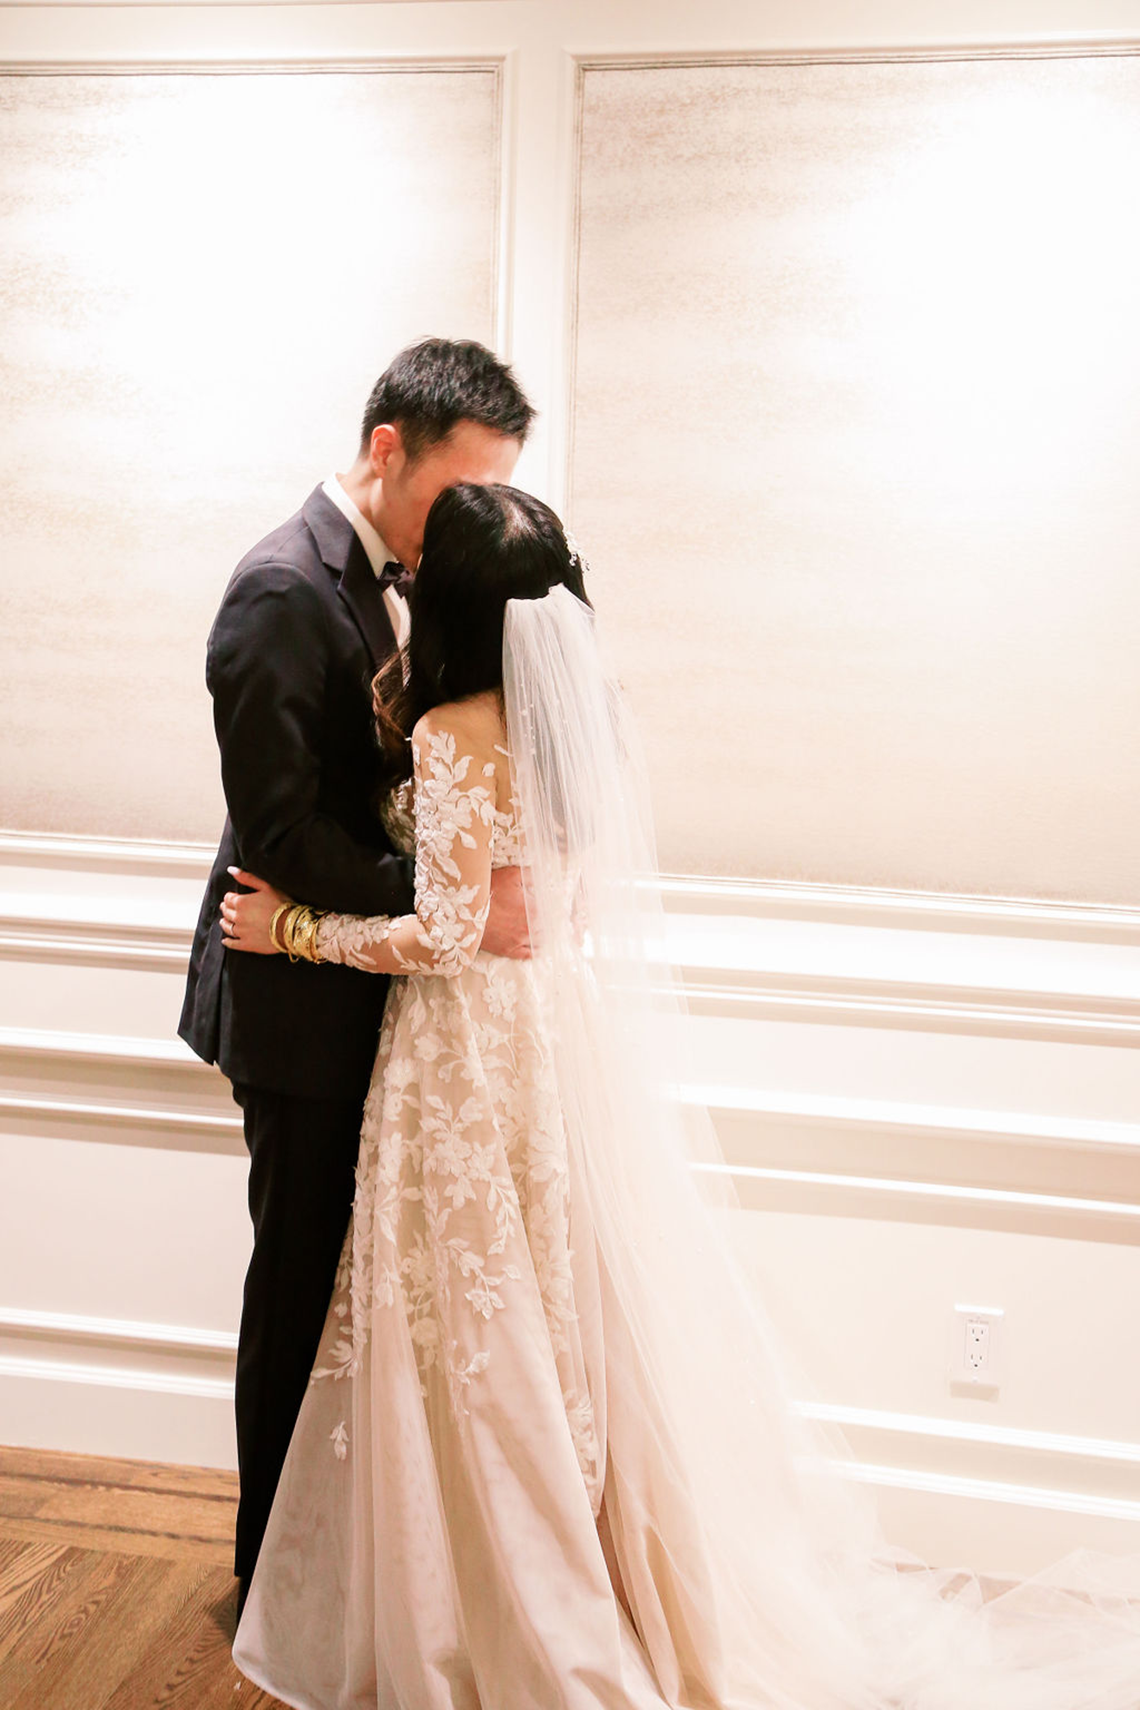 Chic City Wedding With Chinese Traditions in Vancouver – Natalie Hung Photography 40